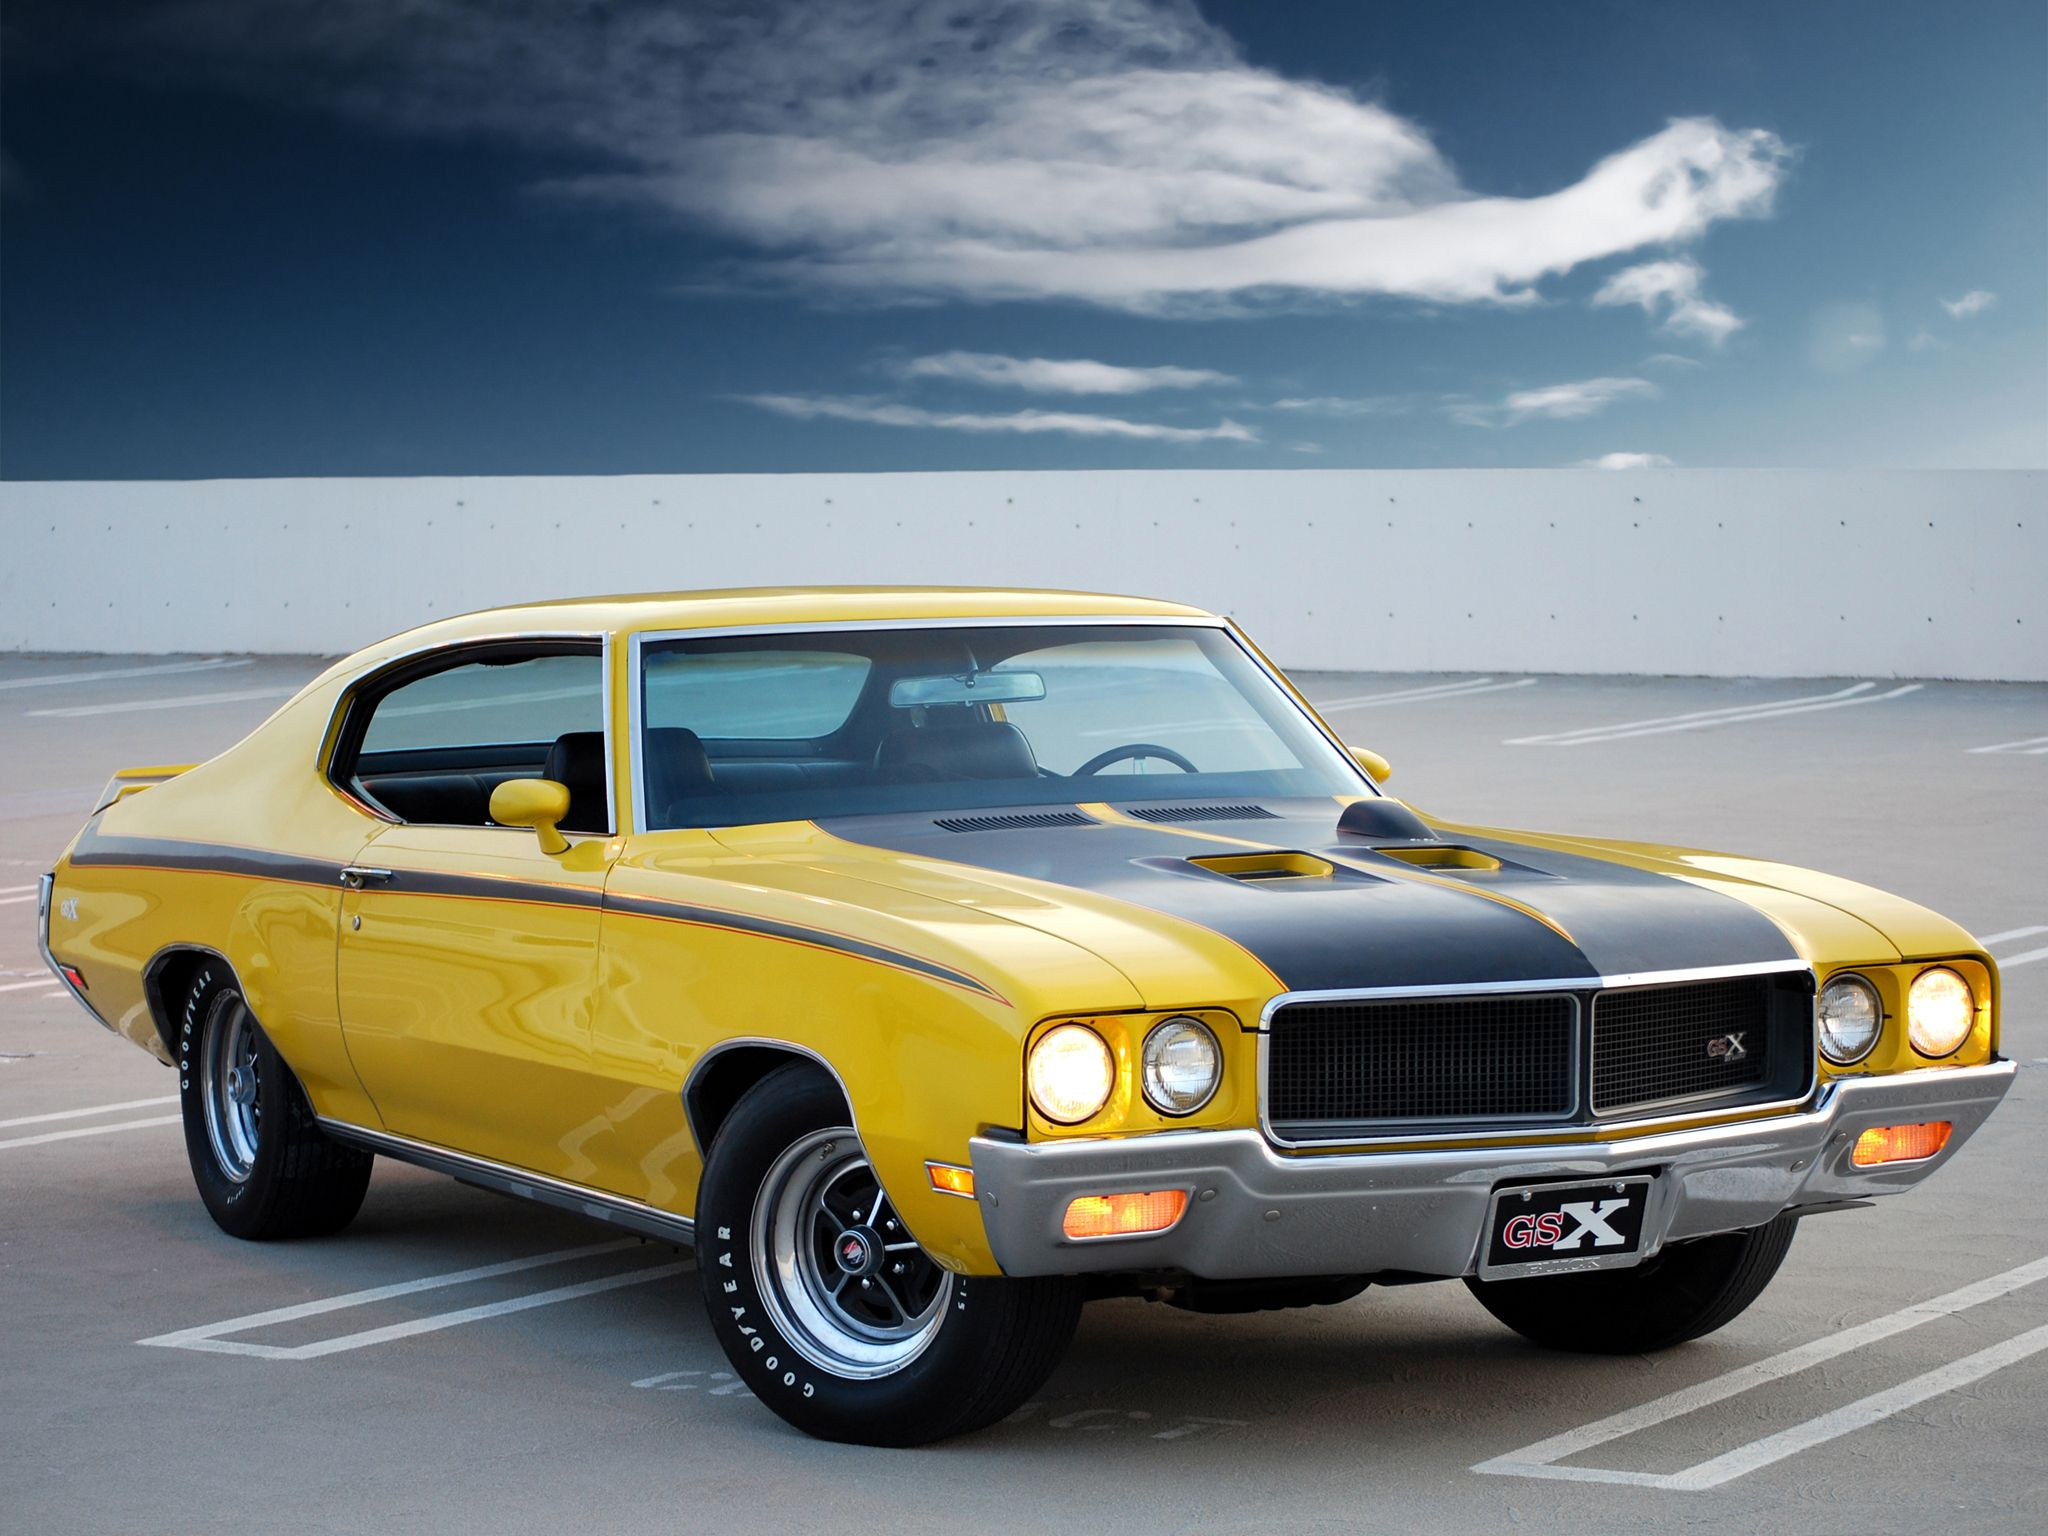 70 Buick GSX - Good things get better with age.   Old skool cool ...